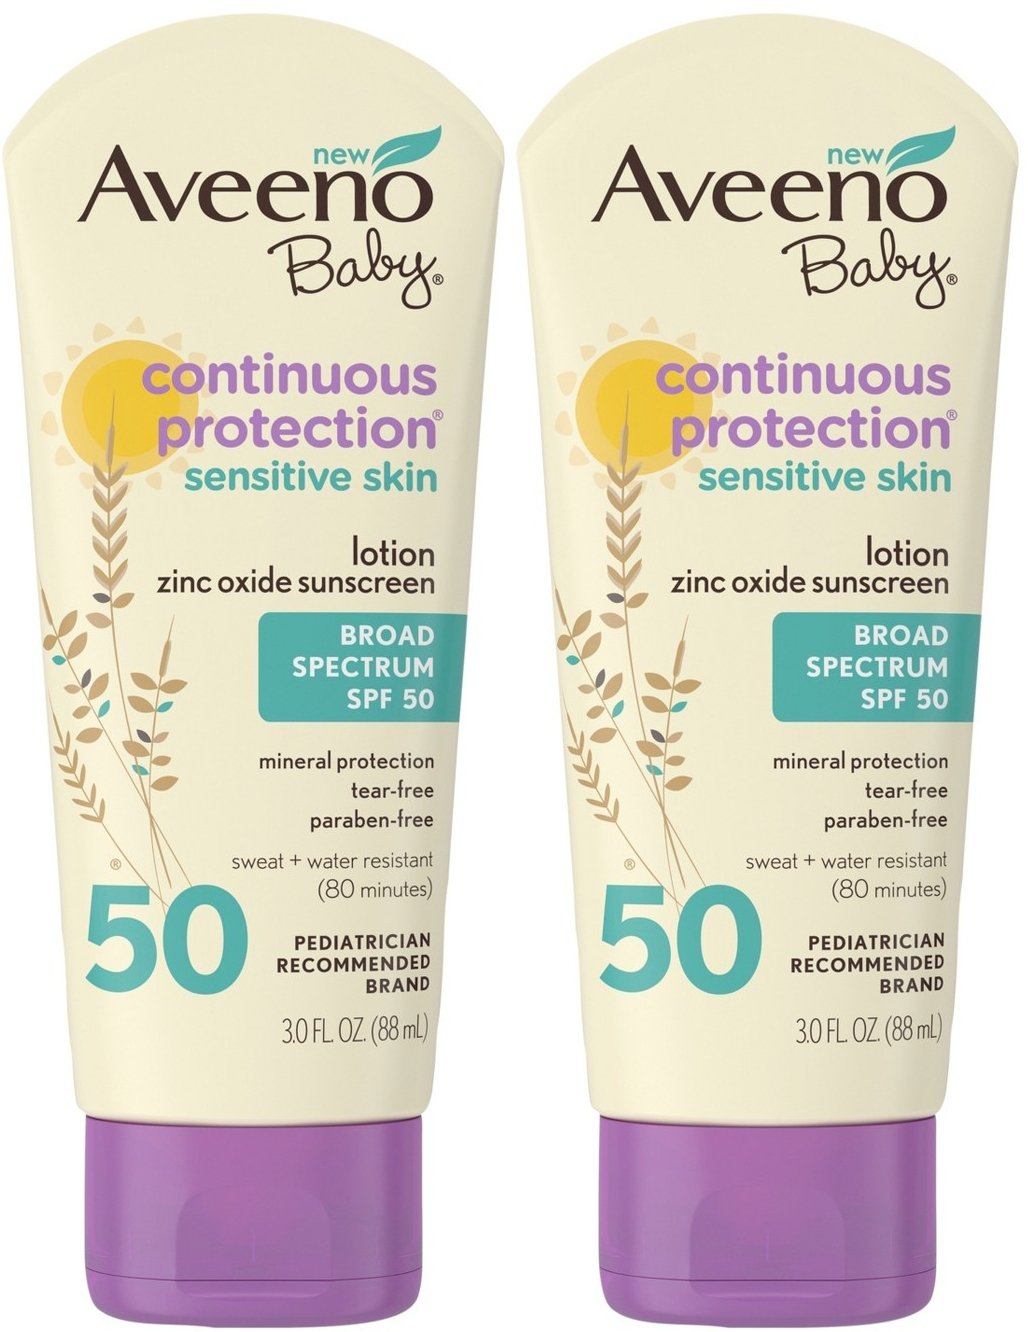 AVEENO Baby Continuous Protection Sensitive Skin Lotion Zinc Oxide Sunscreen SPF 50 3 oz ( Pack of 2)